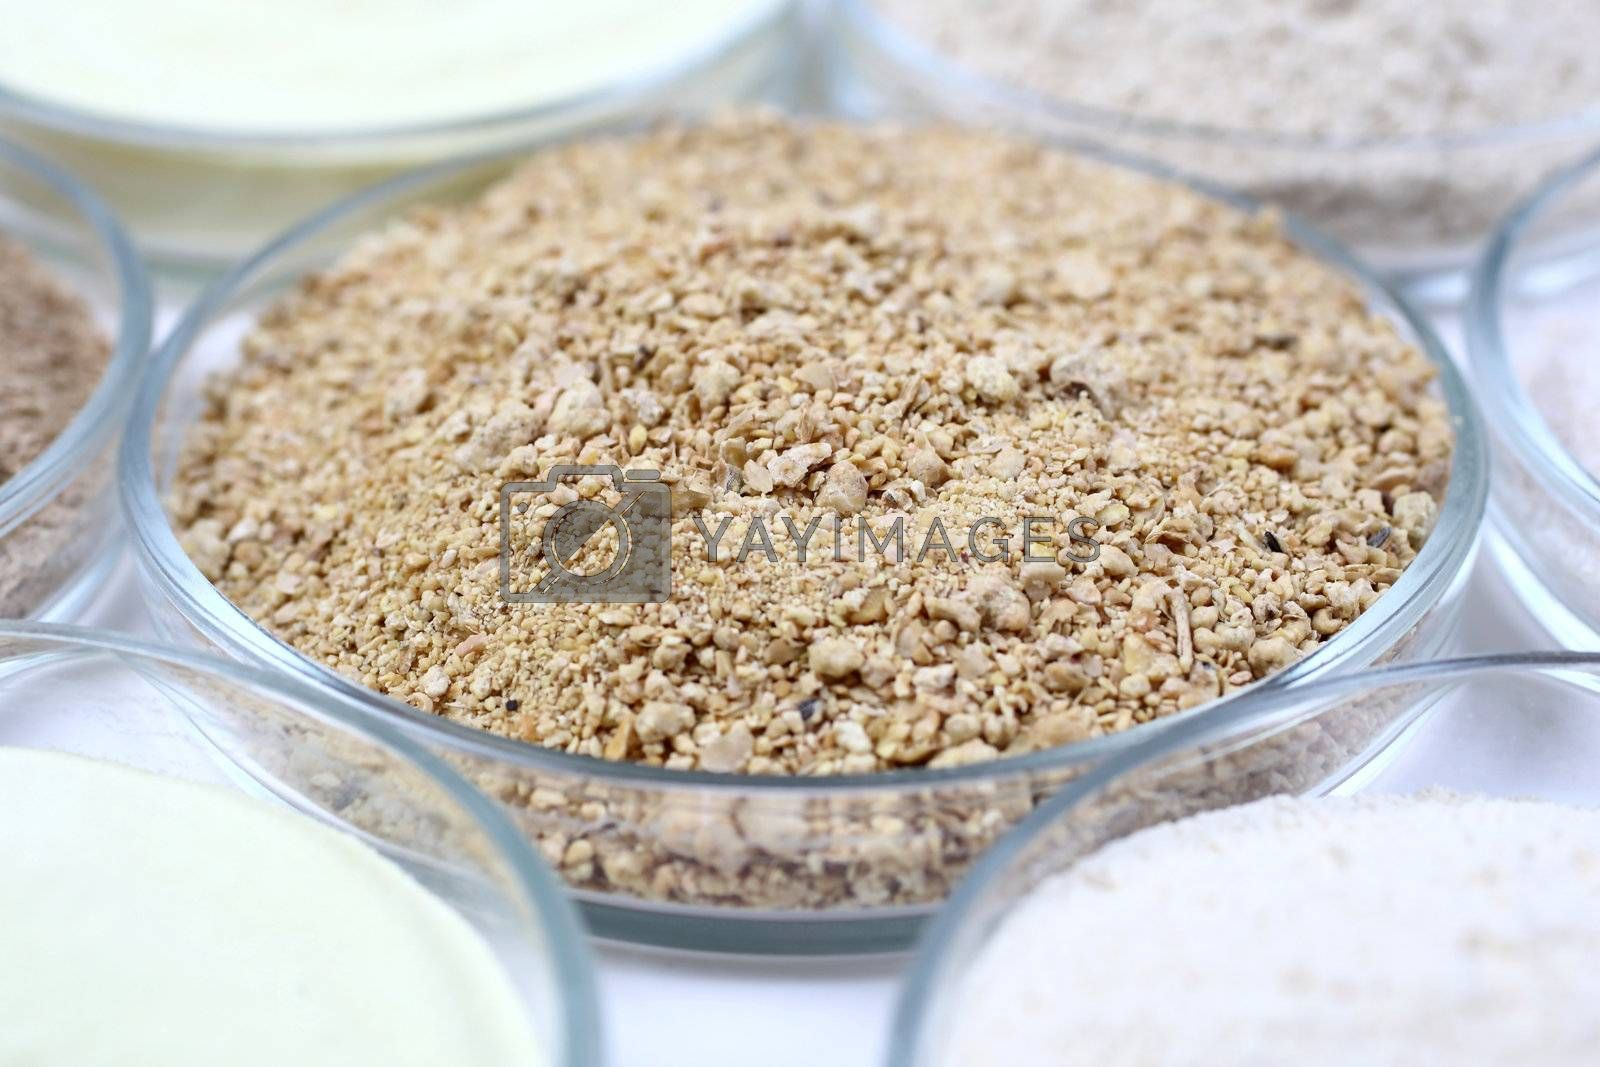 Various nutritious animal food in a glass bowls